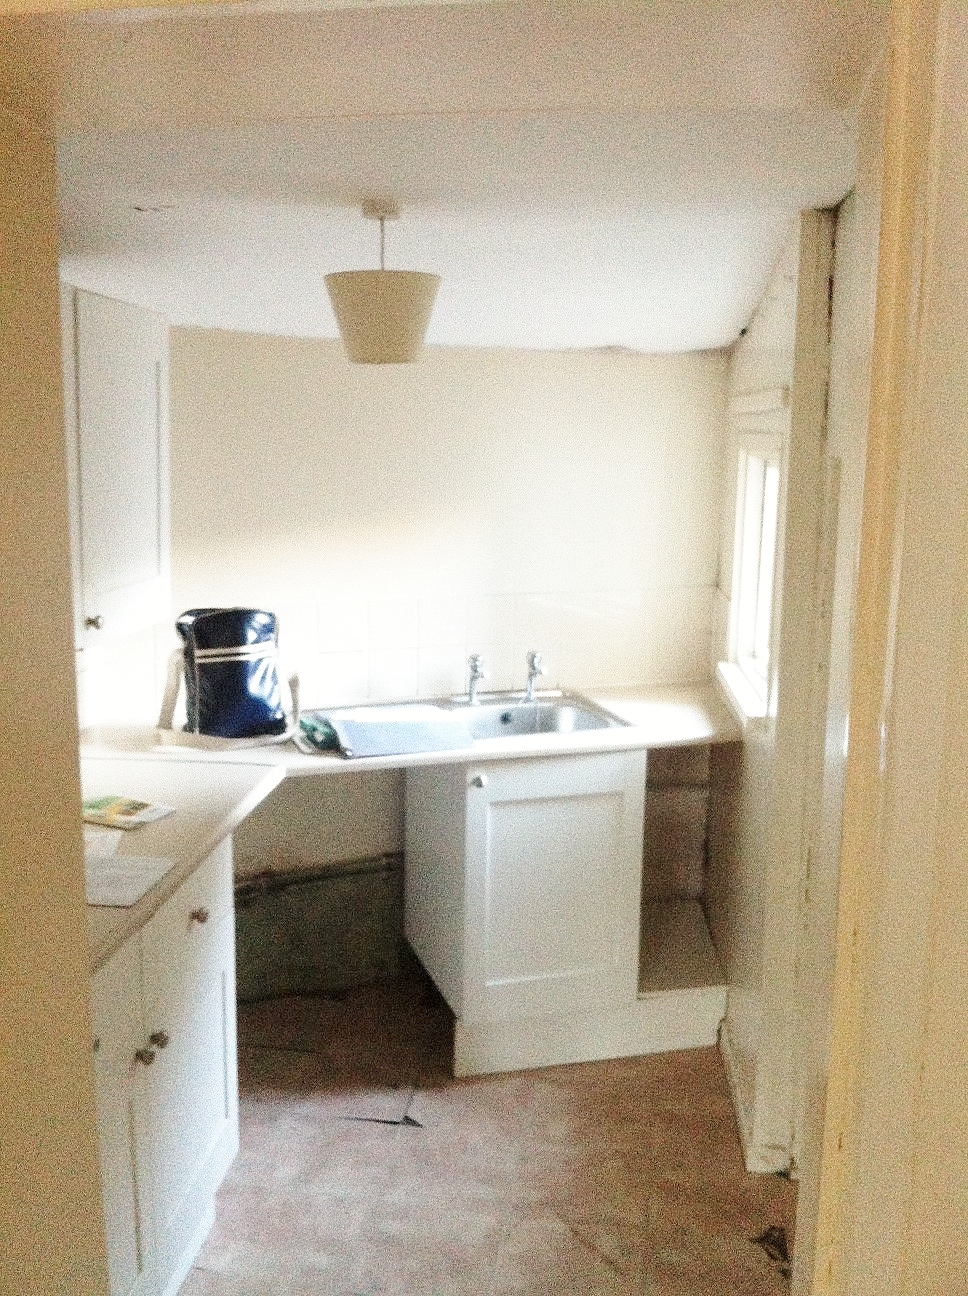 Original kitchen extension, now you see it...